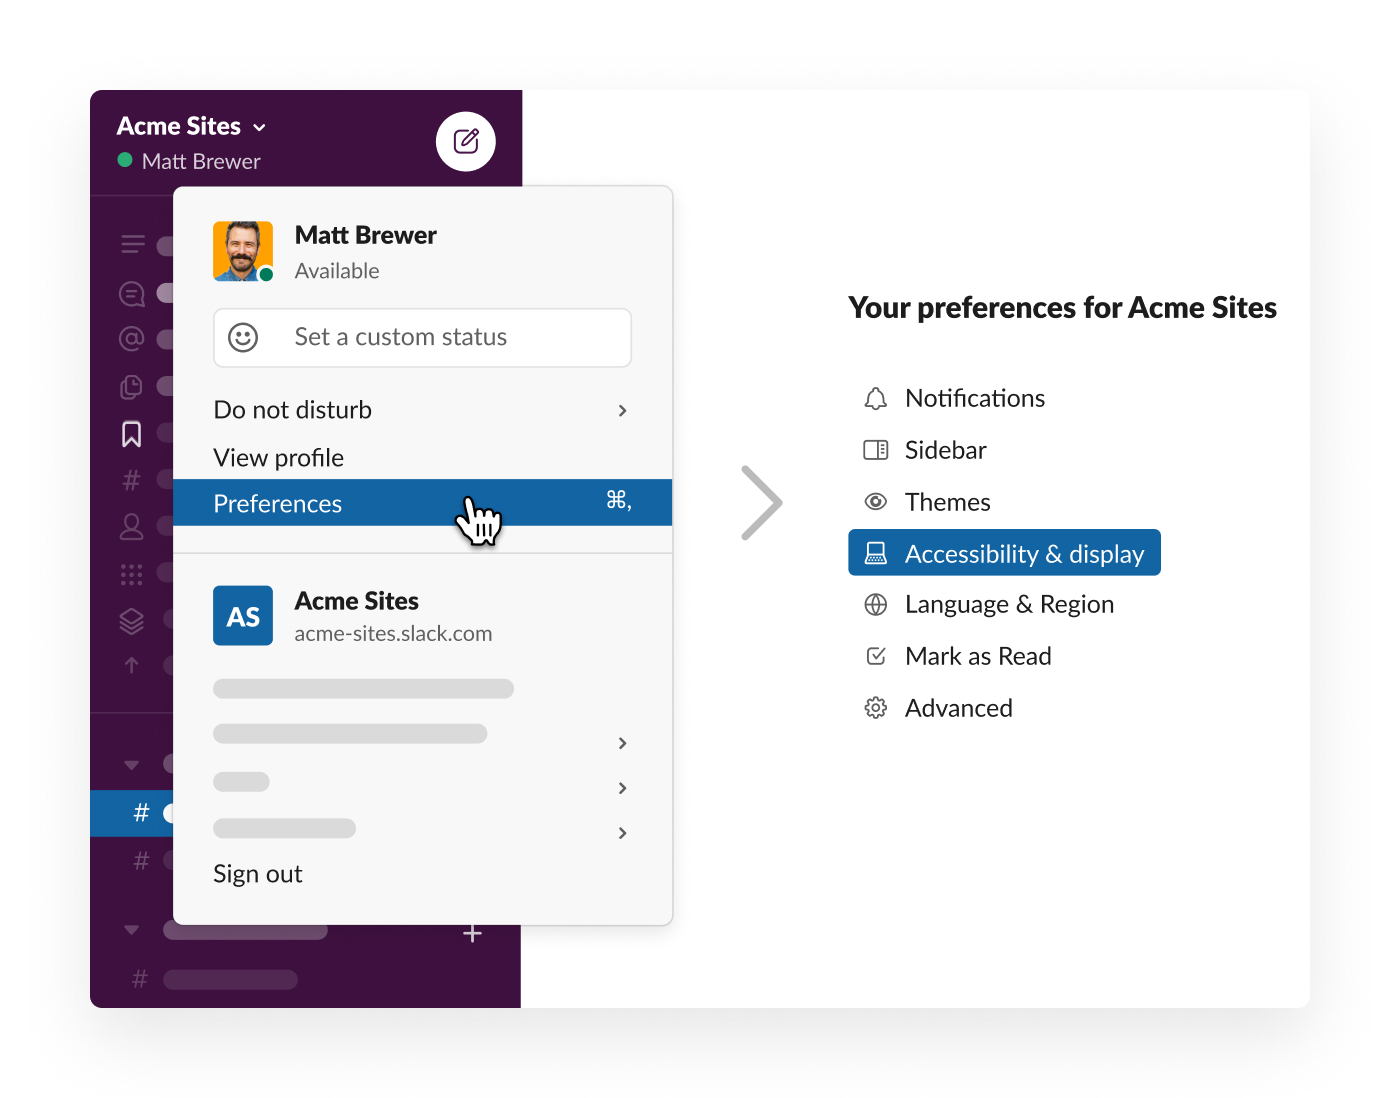 slack preferences for accessibility and display